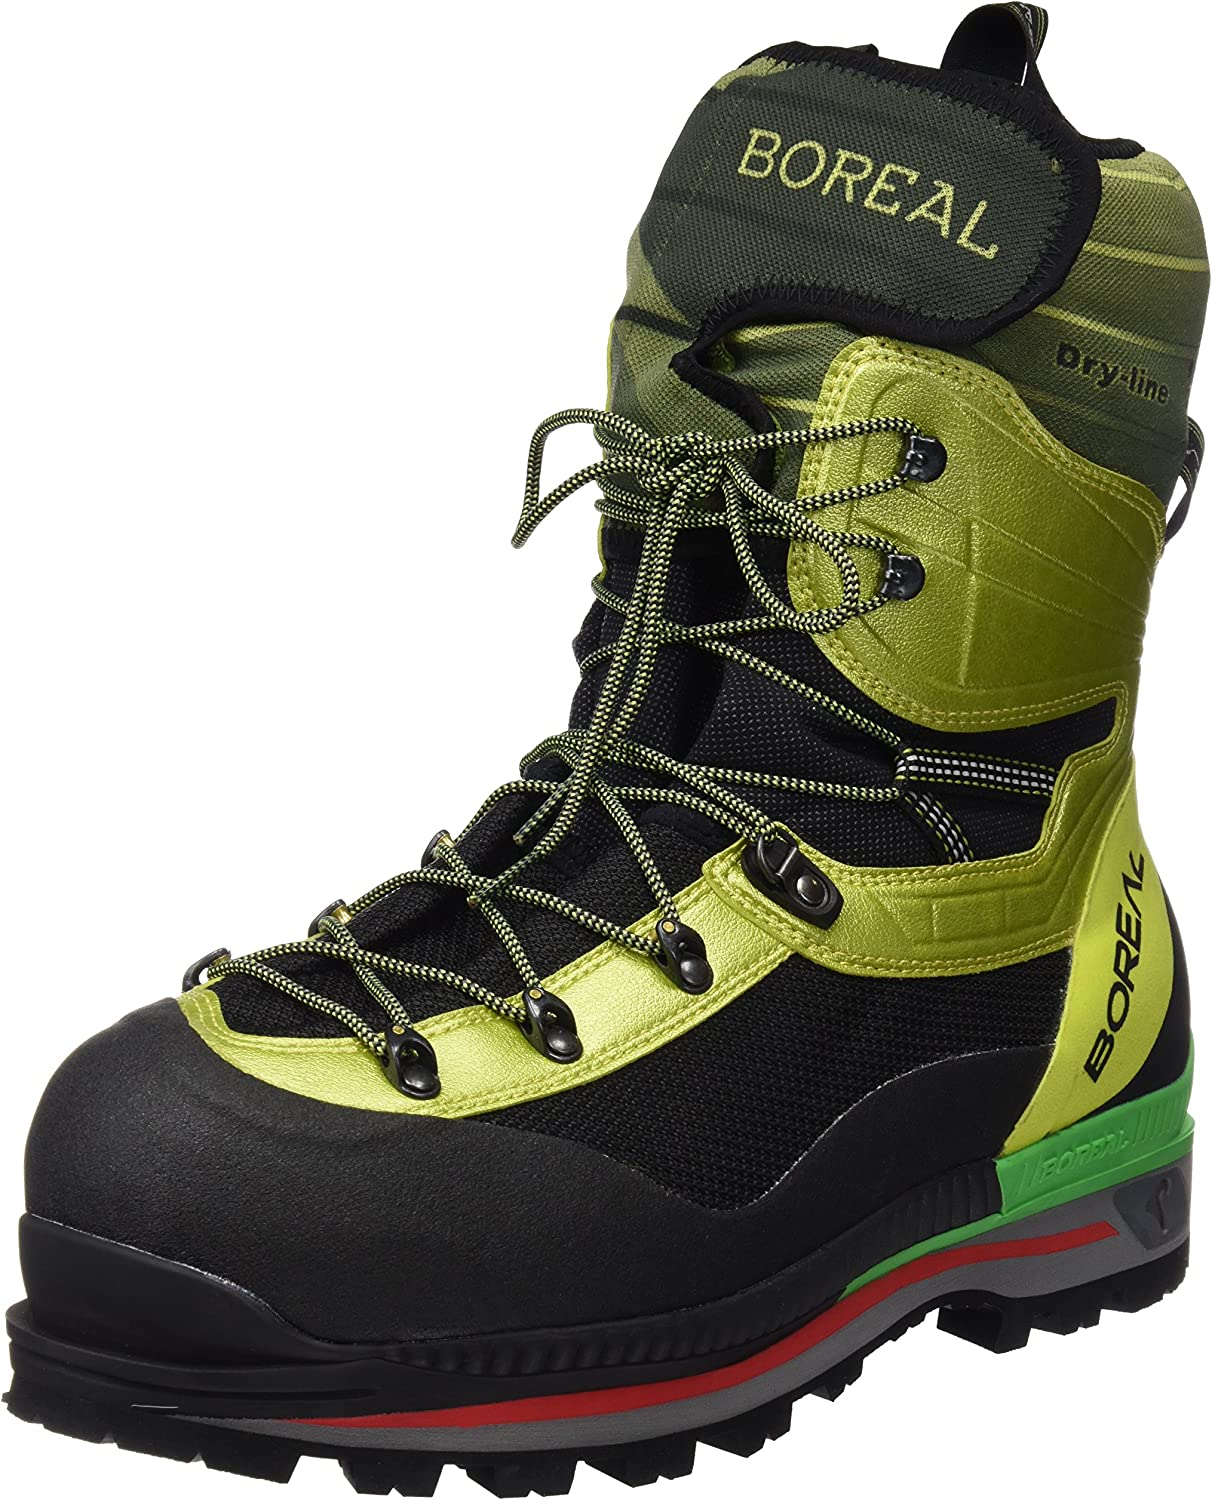 Boreal G1 Price Free shipping reduction Lite Mountaineering Boot